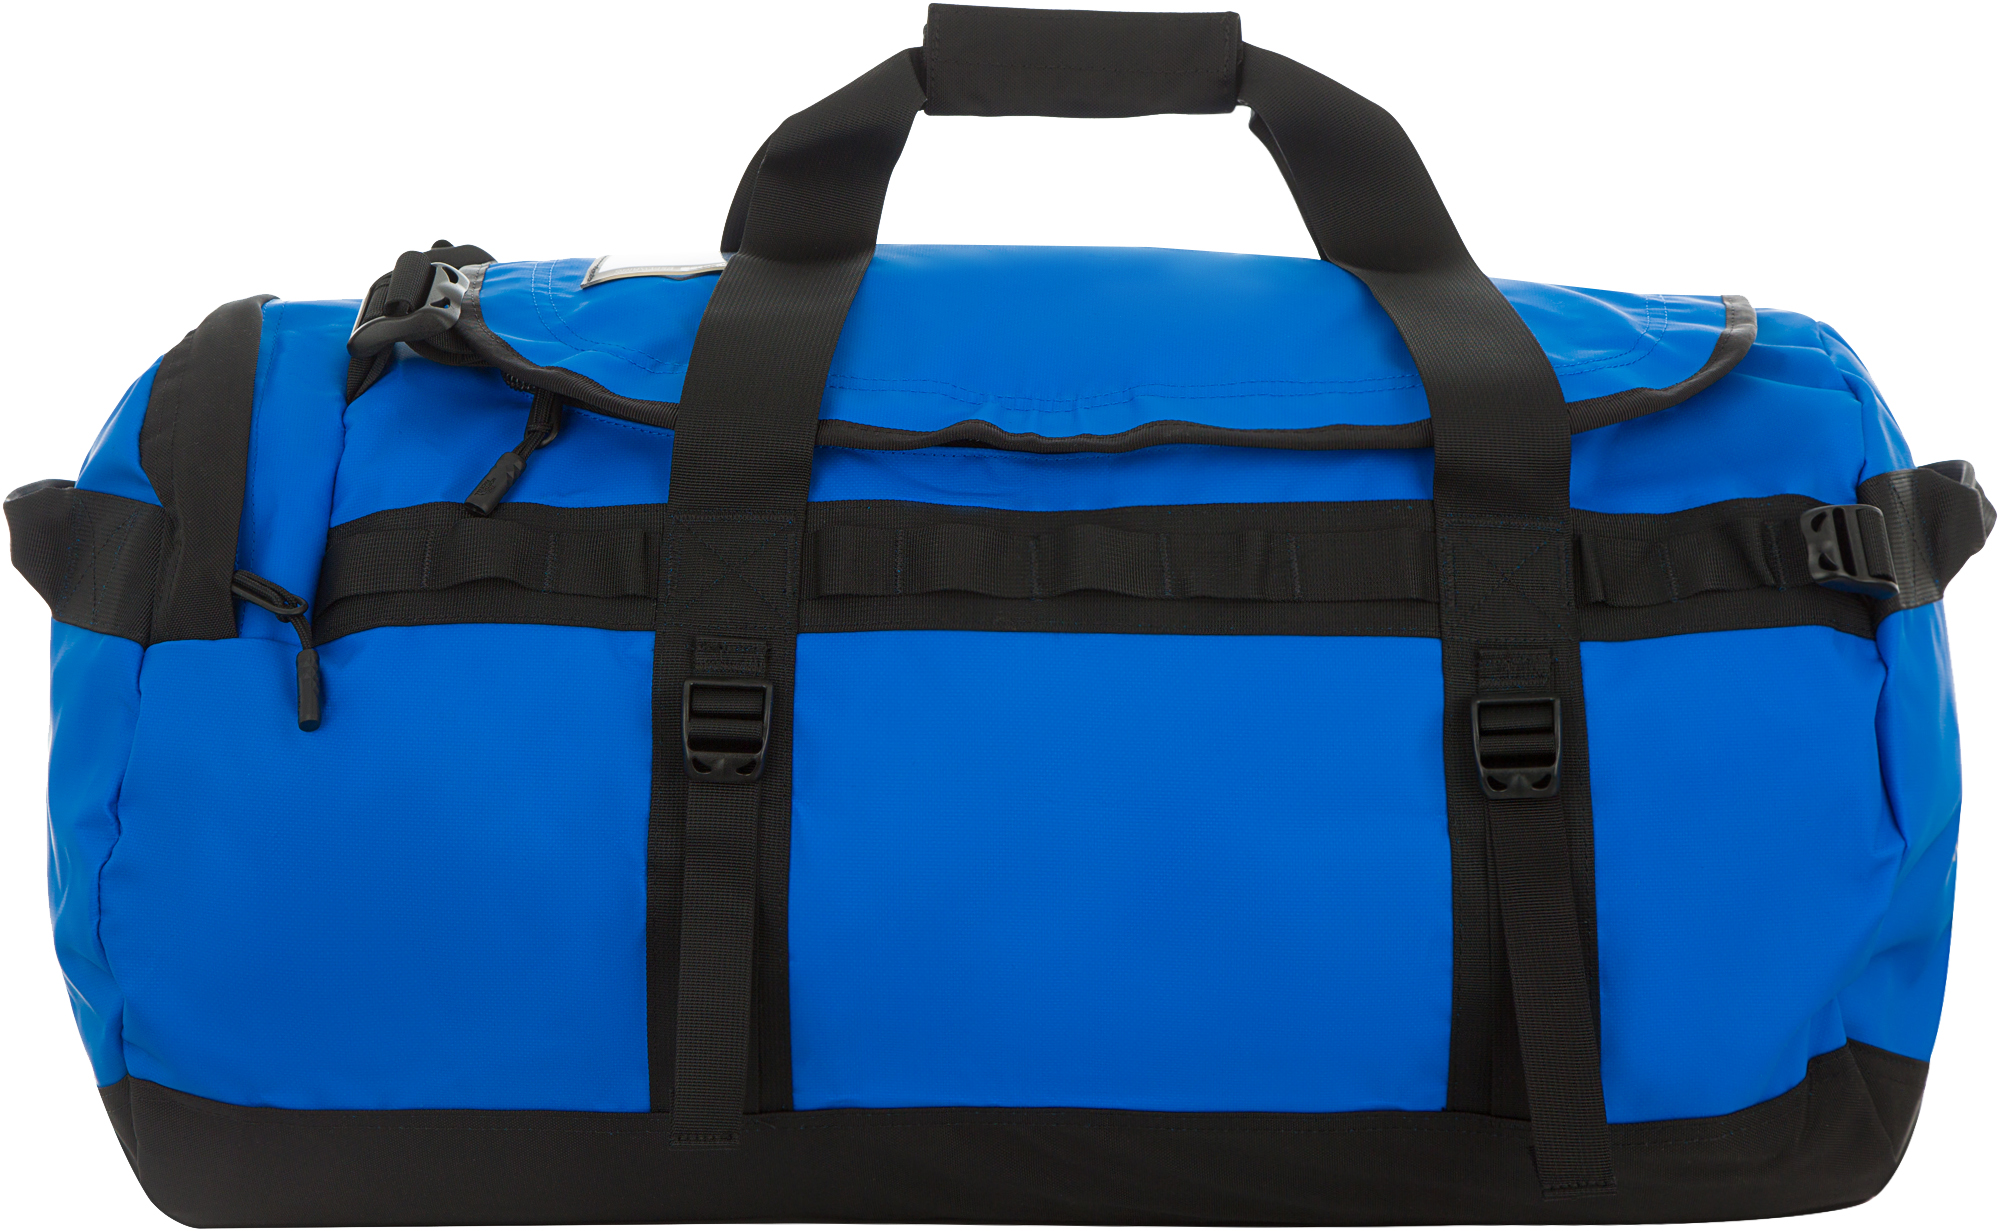 The North Face Сумка The North Face Base Camp Duffel рюкзак the north face the north face lineage ruck синий 23л